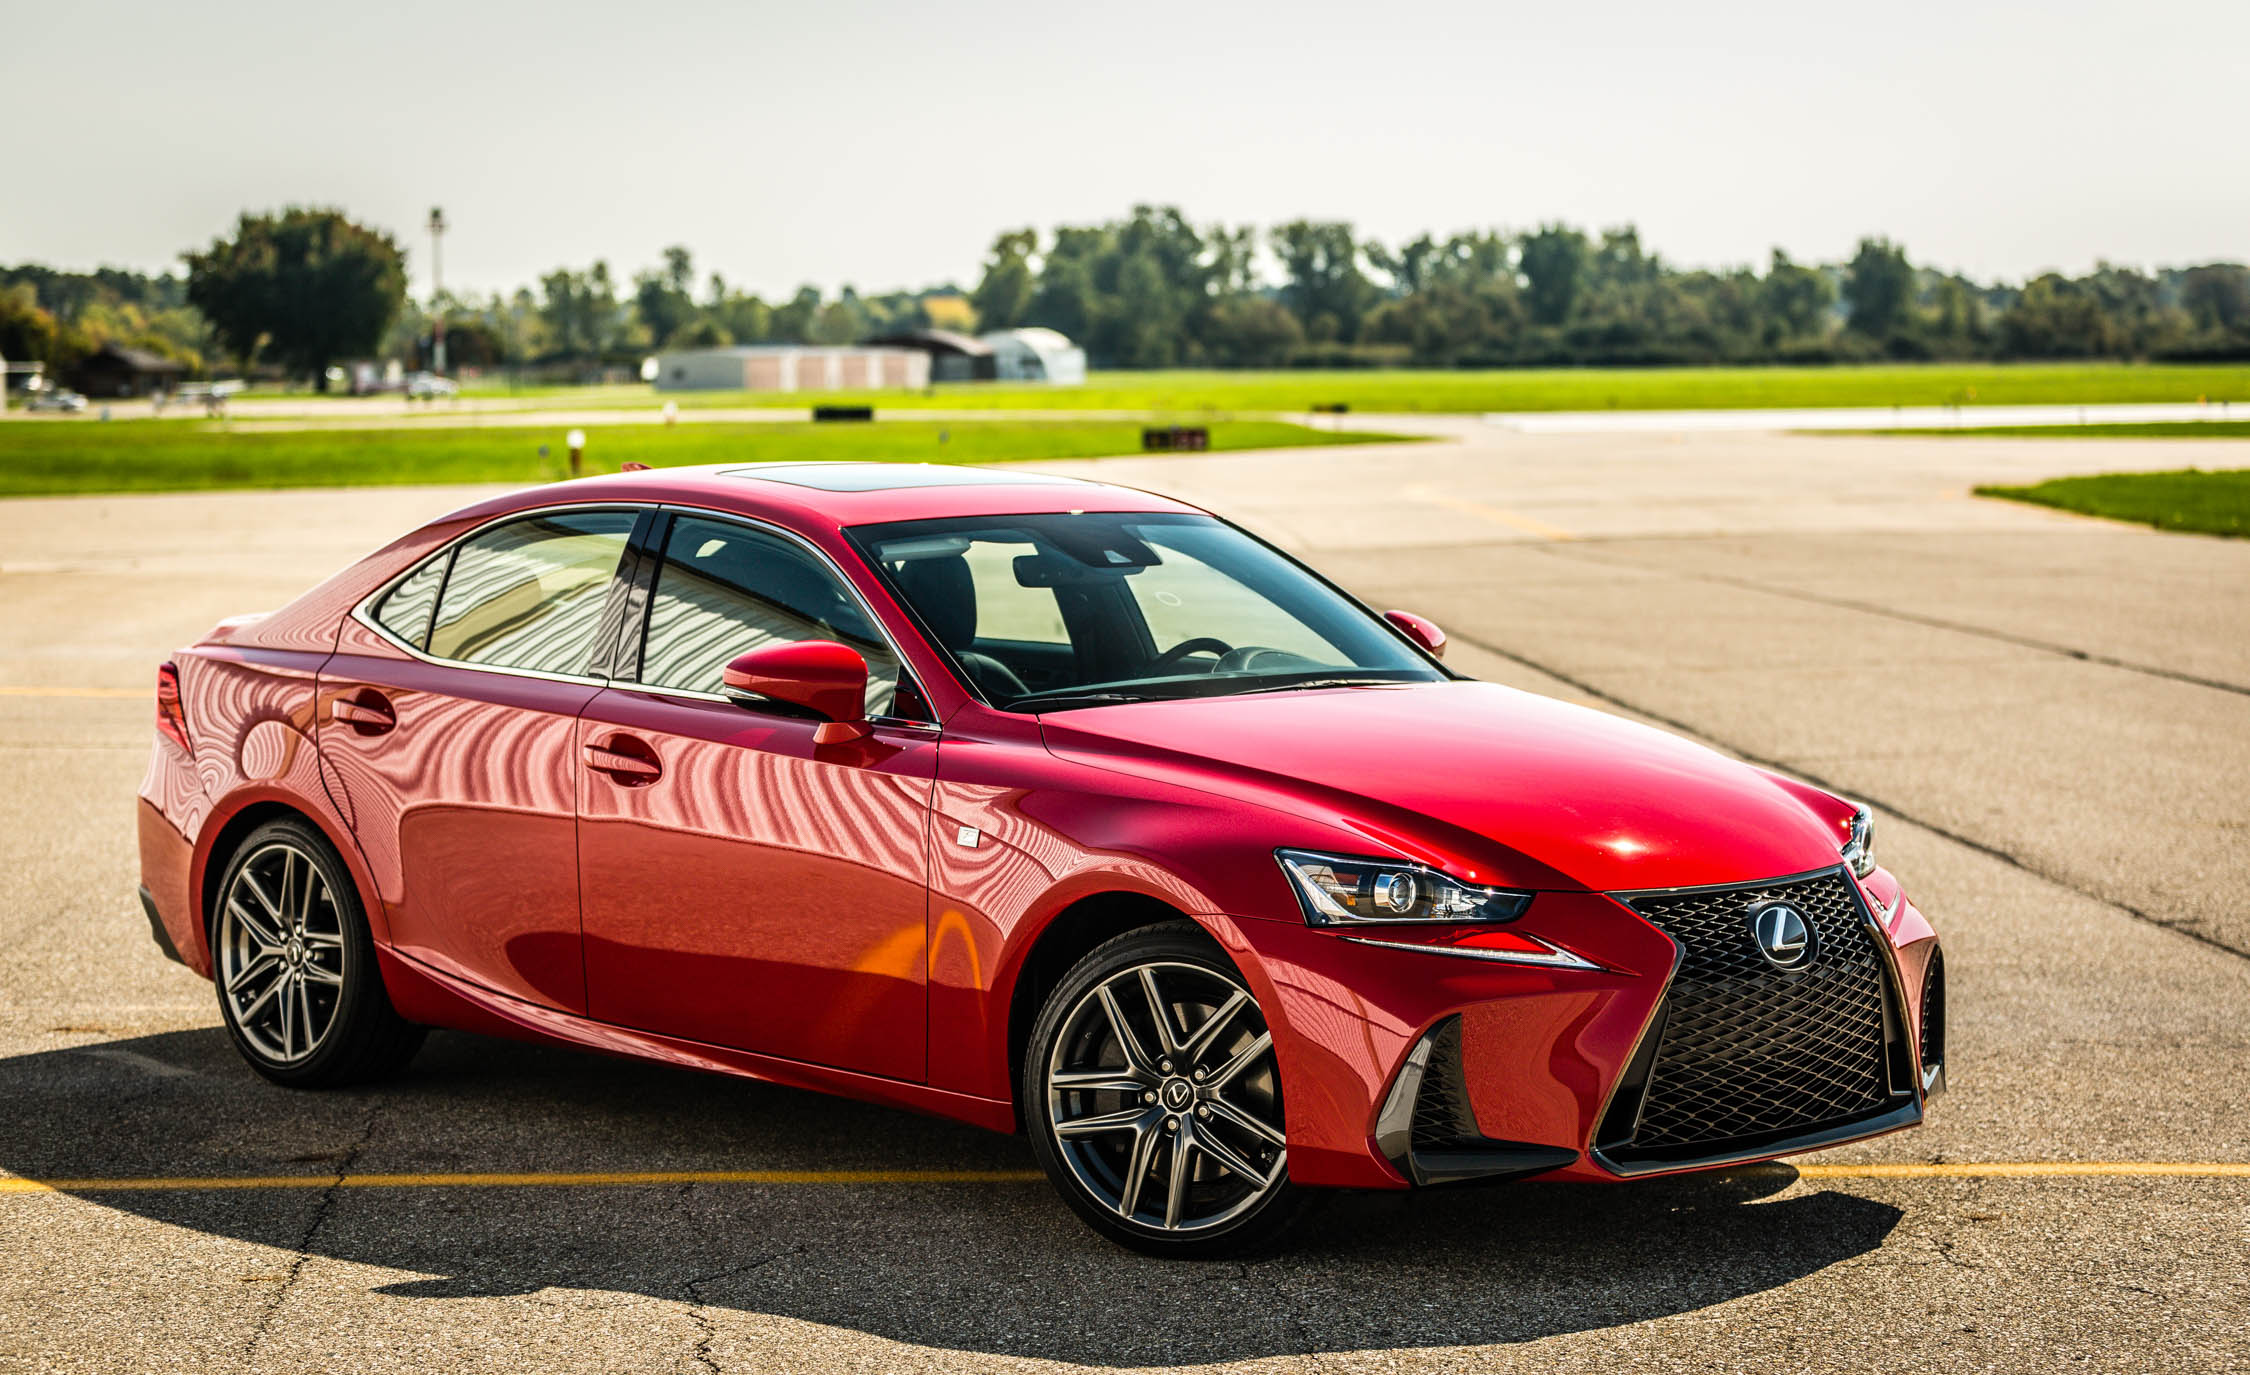 2017 Lexus IS 200t F Sport Red Exterior Front And Side (Photo 13 of 29)